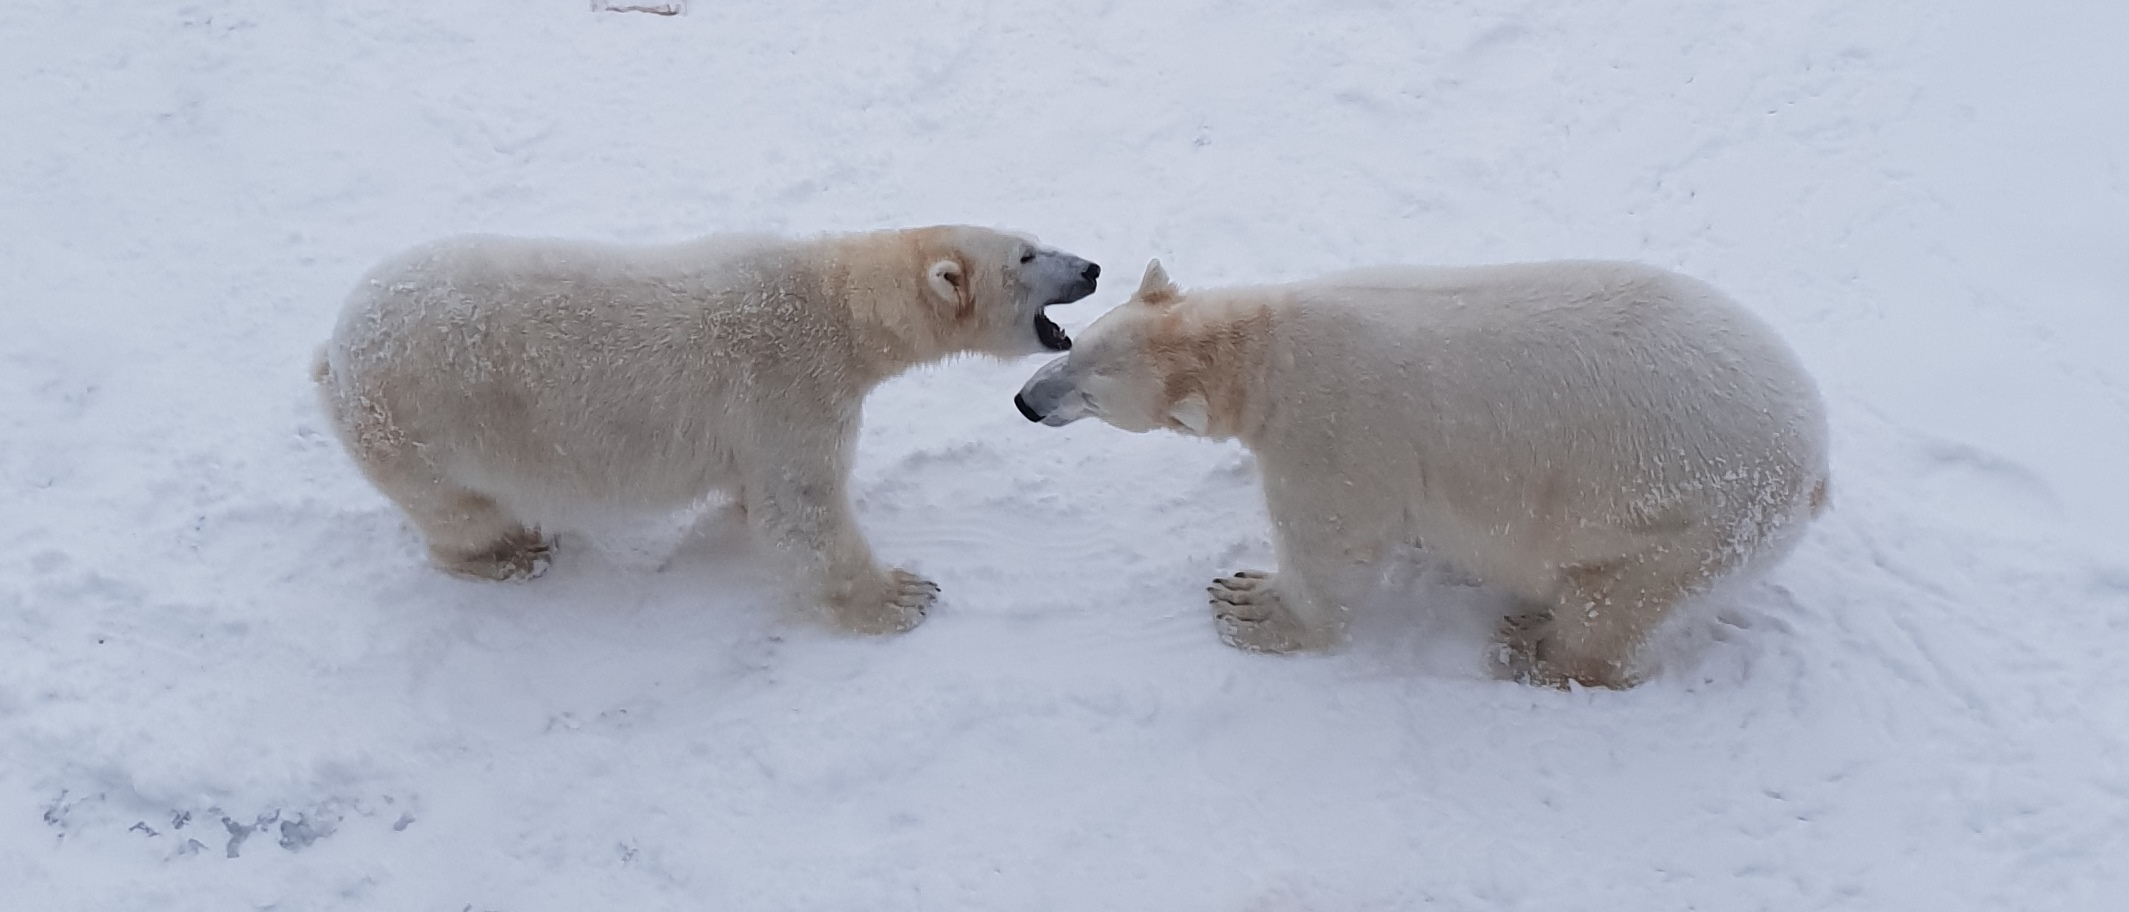 Polar Bears at the Rauna Zoo in Rovaniemi, Lapland Finland